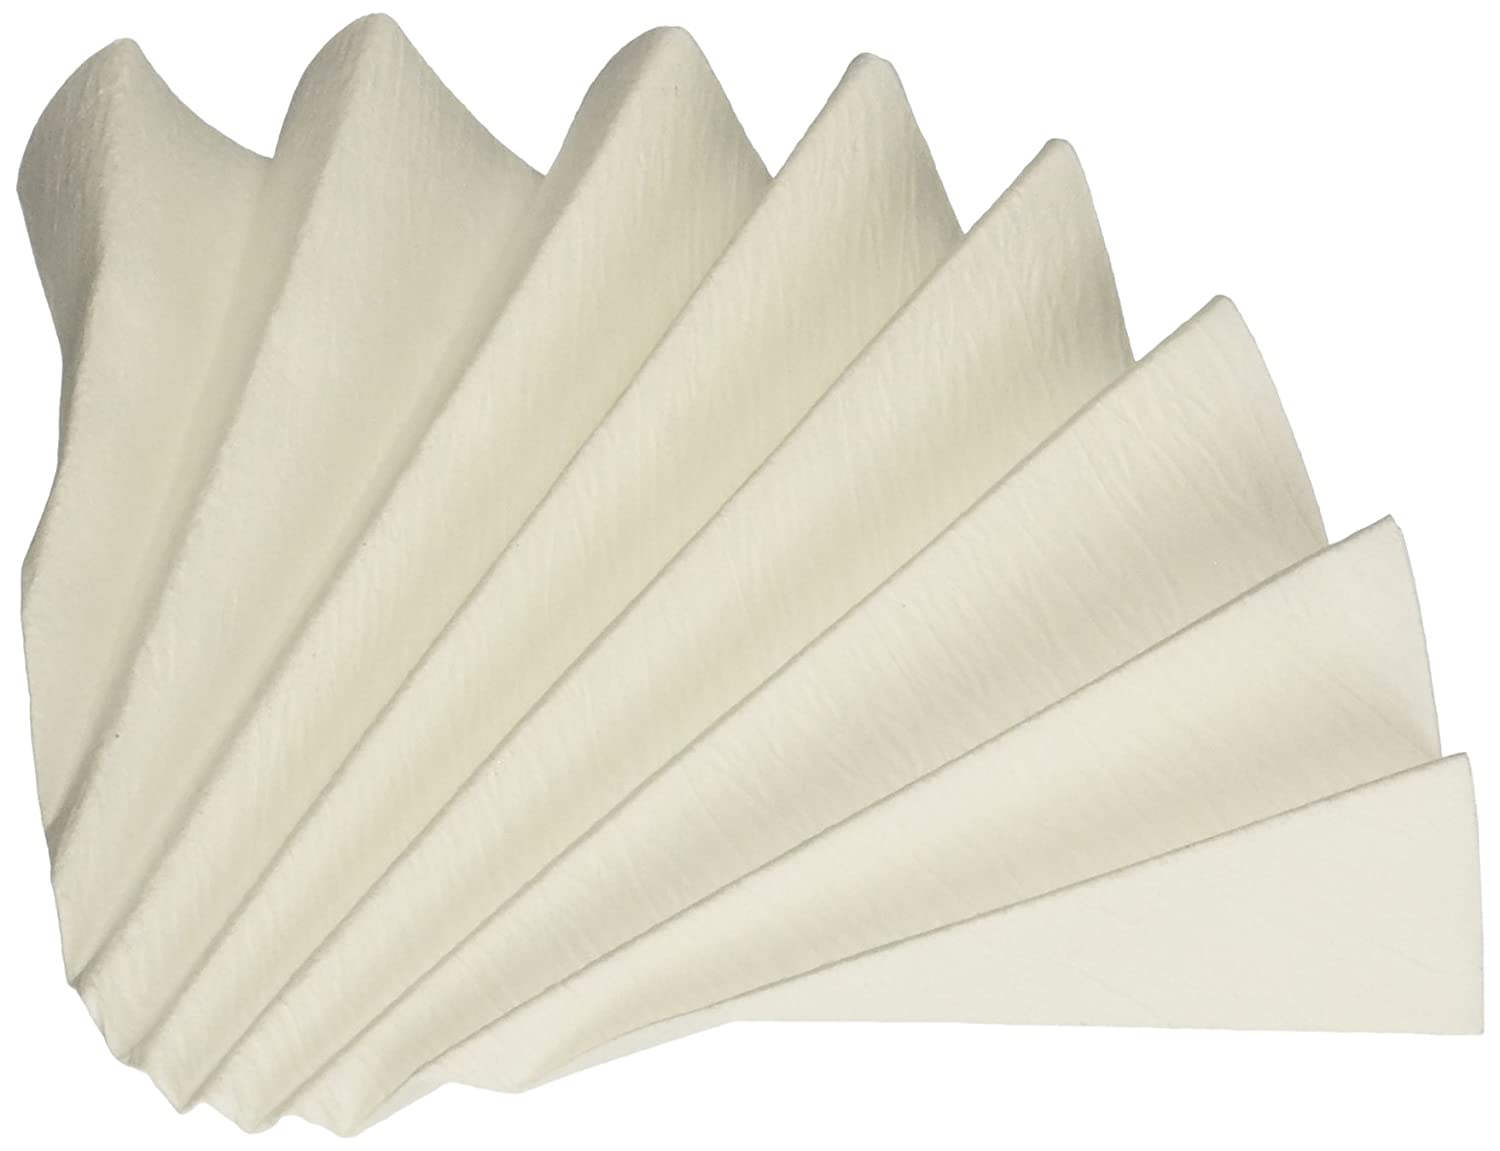 18.5cm Diameter Fast Speed Pack of 100 Creped Surface Circle Prepleated Grade 802 GE Whatman Reeve Angel 5802-185 Qualitative Filter Paper